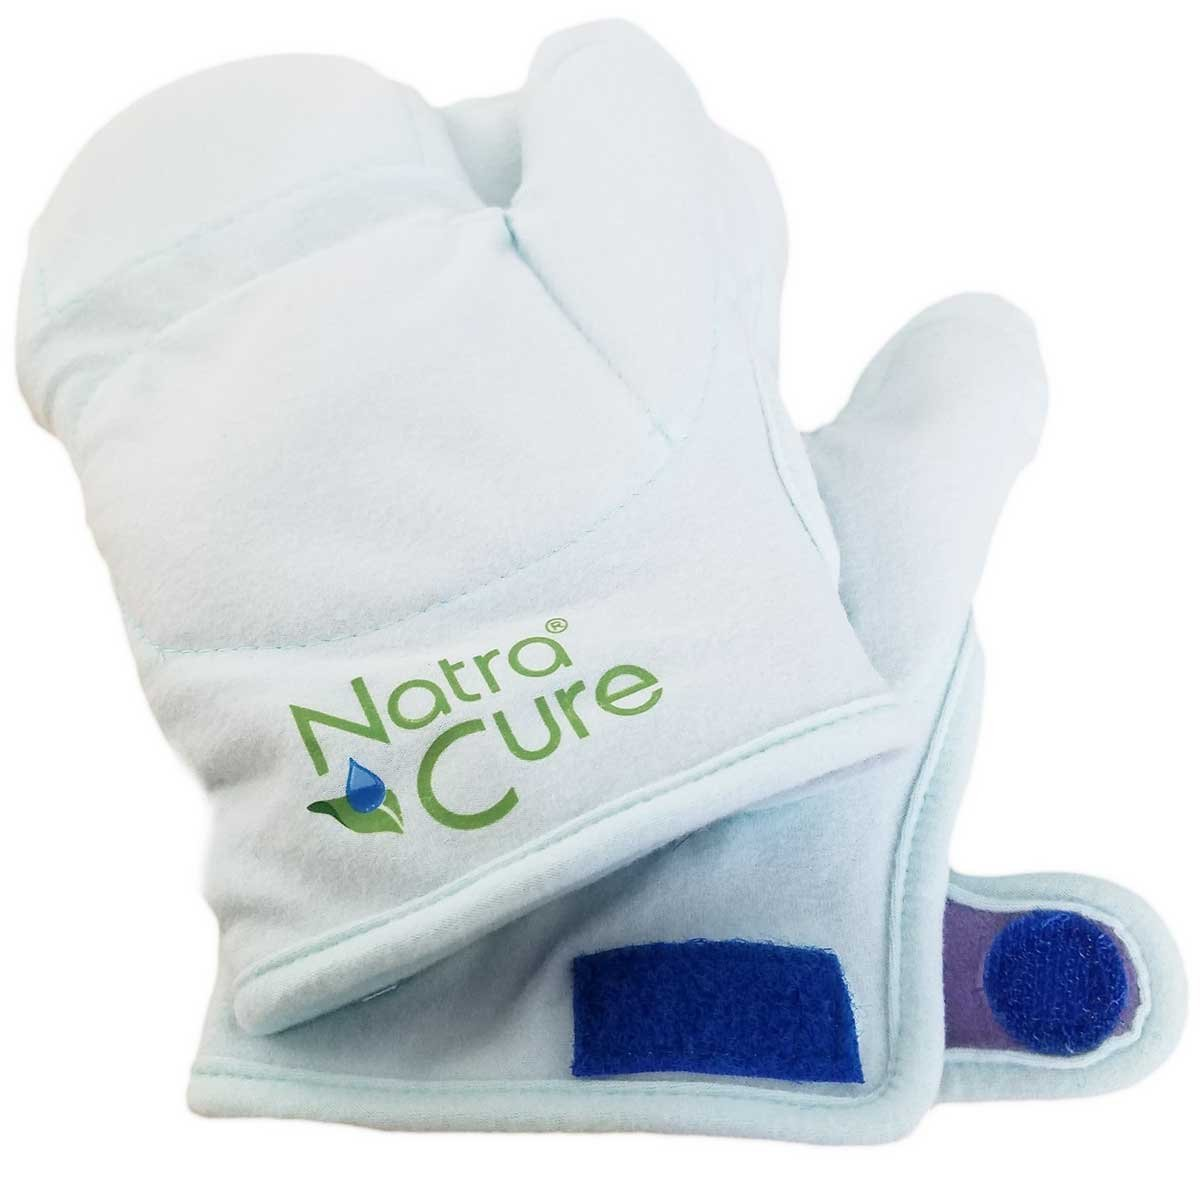 NatraCure Arthritis Warming Heat Therapy Mittens/Gloves (Without Gel) - (for Relief from Arthritis Pain, Stiff Joints, and Inflammation) by NatraCure